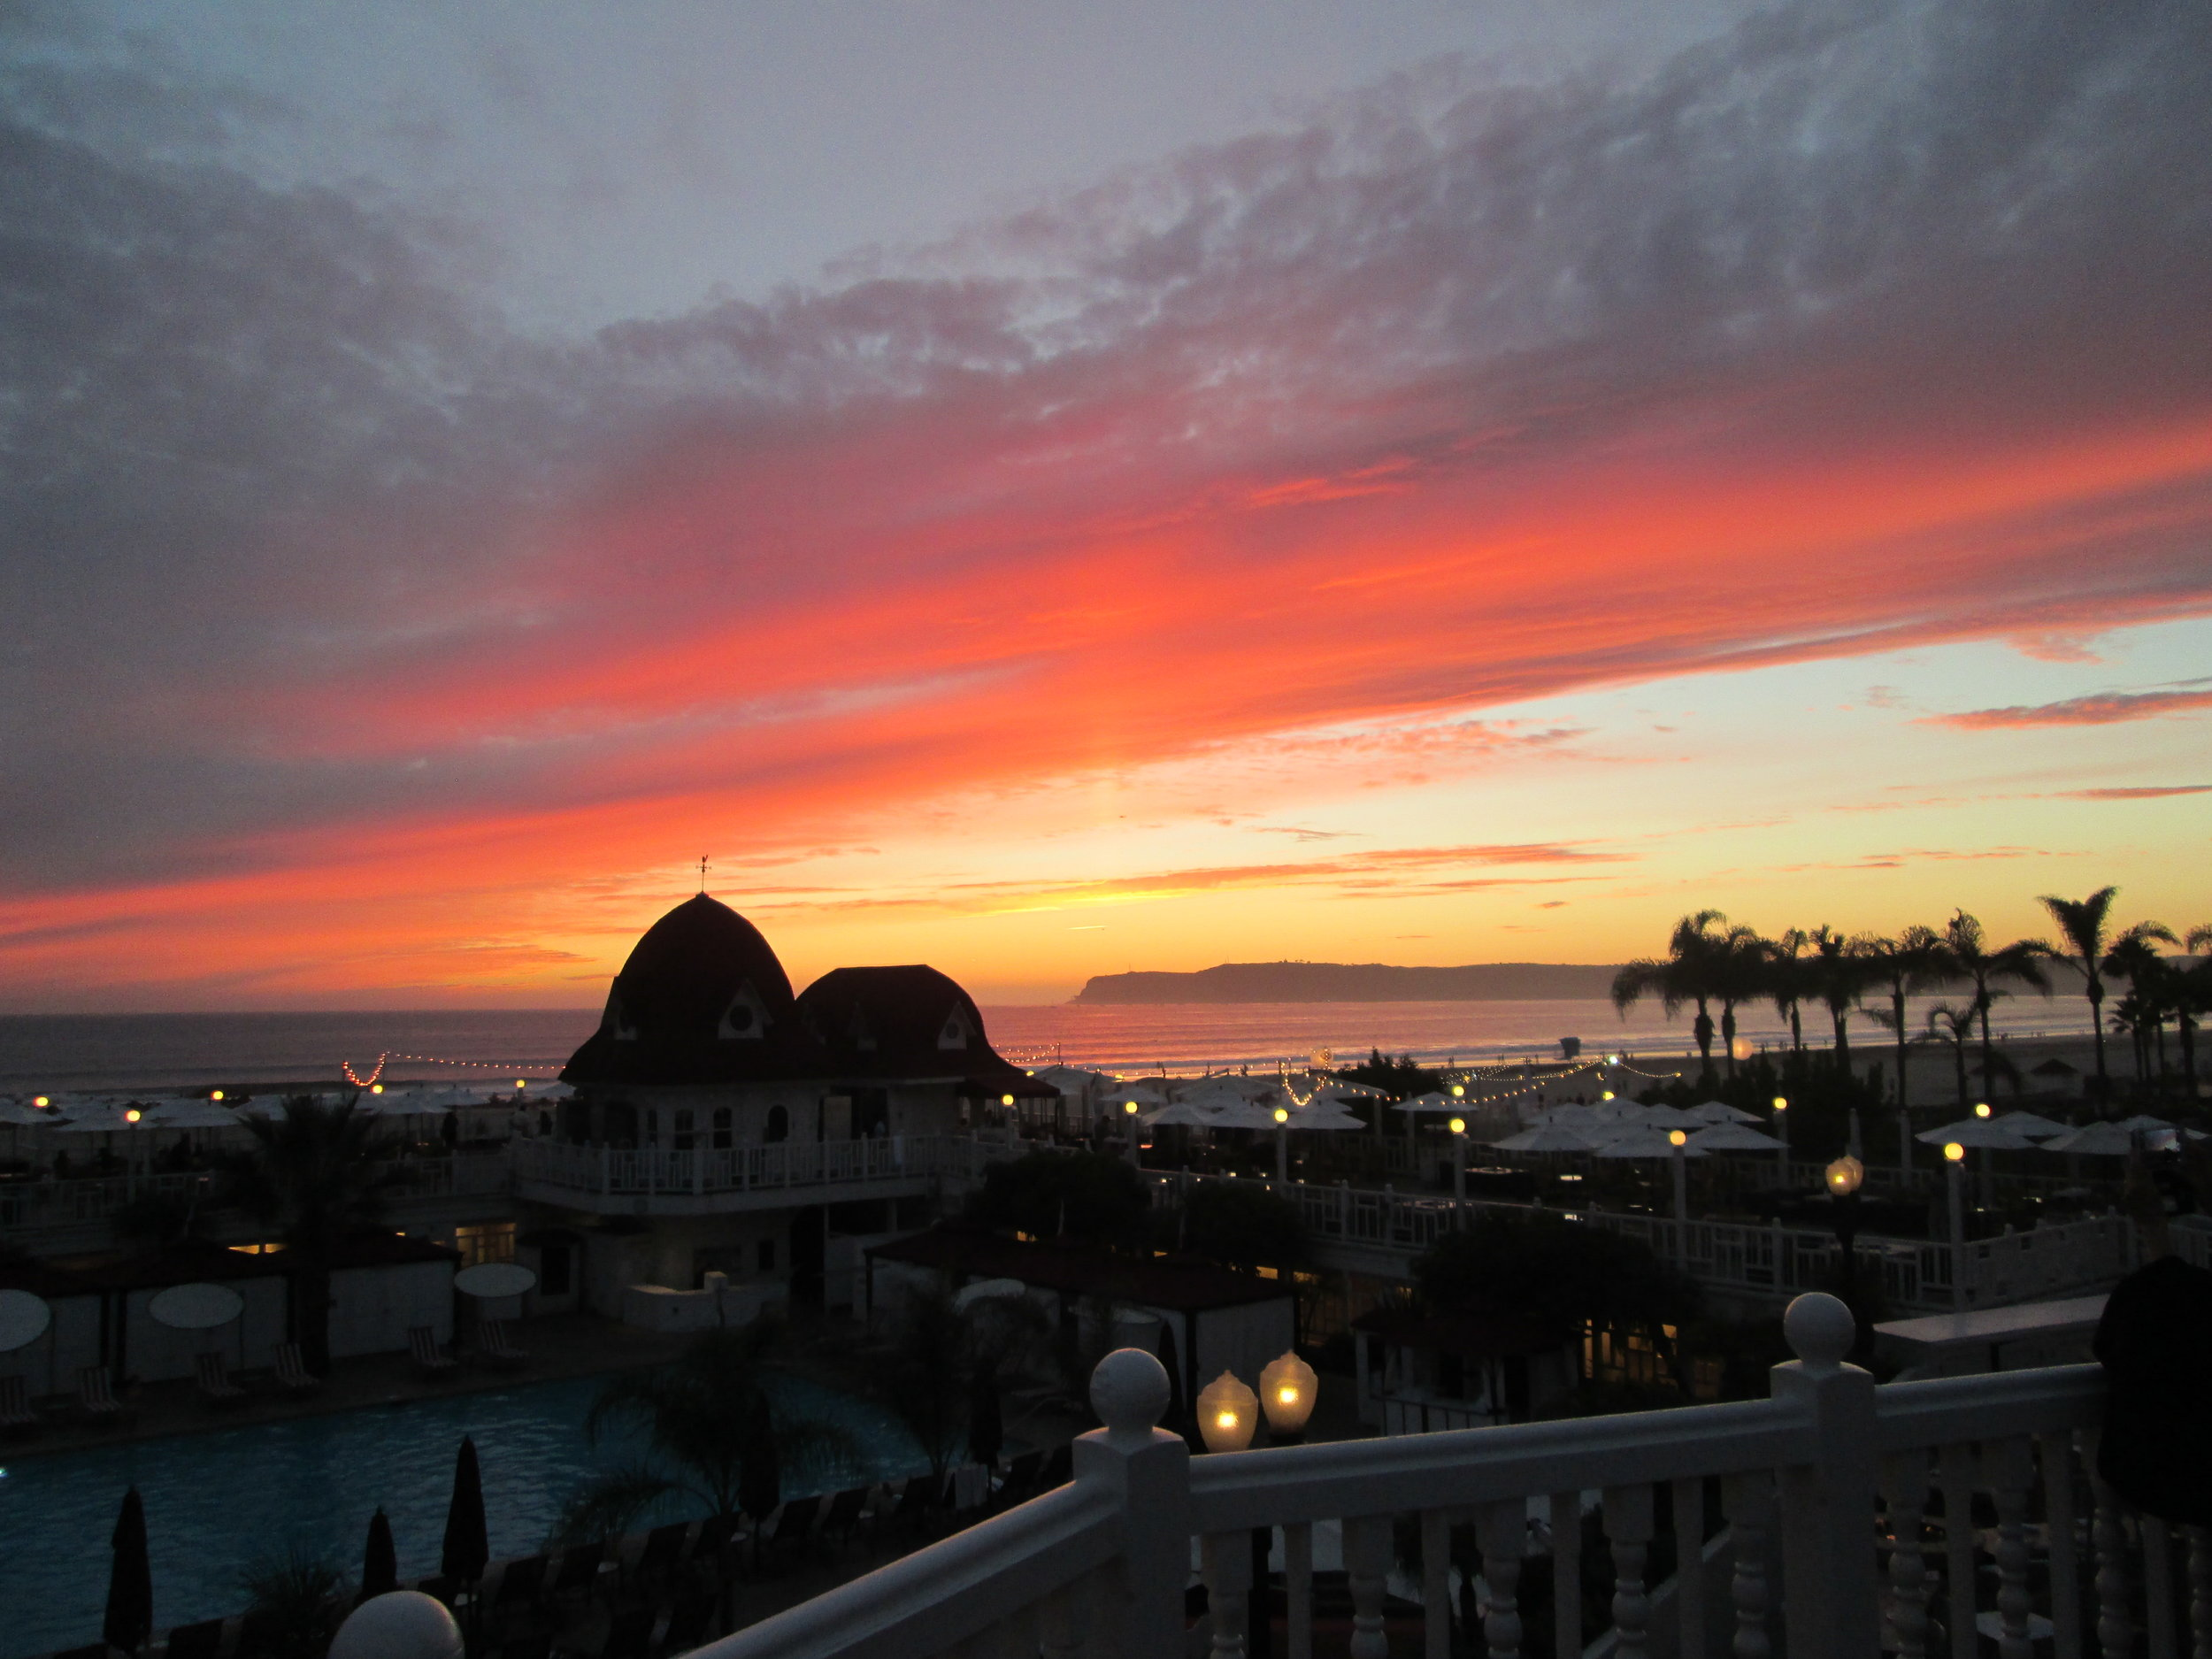 Here's a sunset at the lovely Hotel del Coronado. Walking barefoot on the beach in November is not too shabby. Nice going, California!